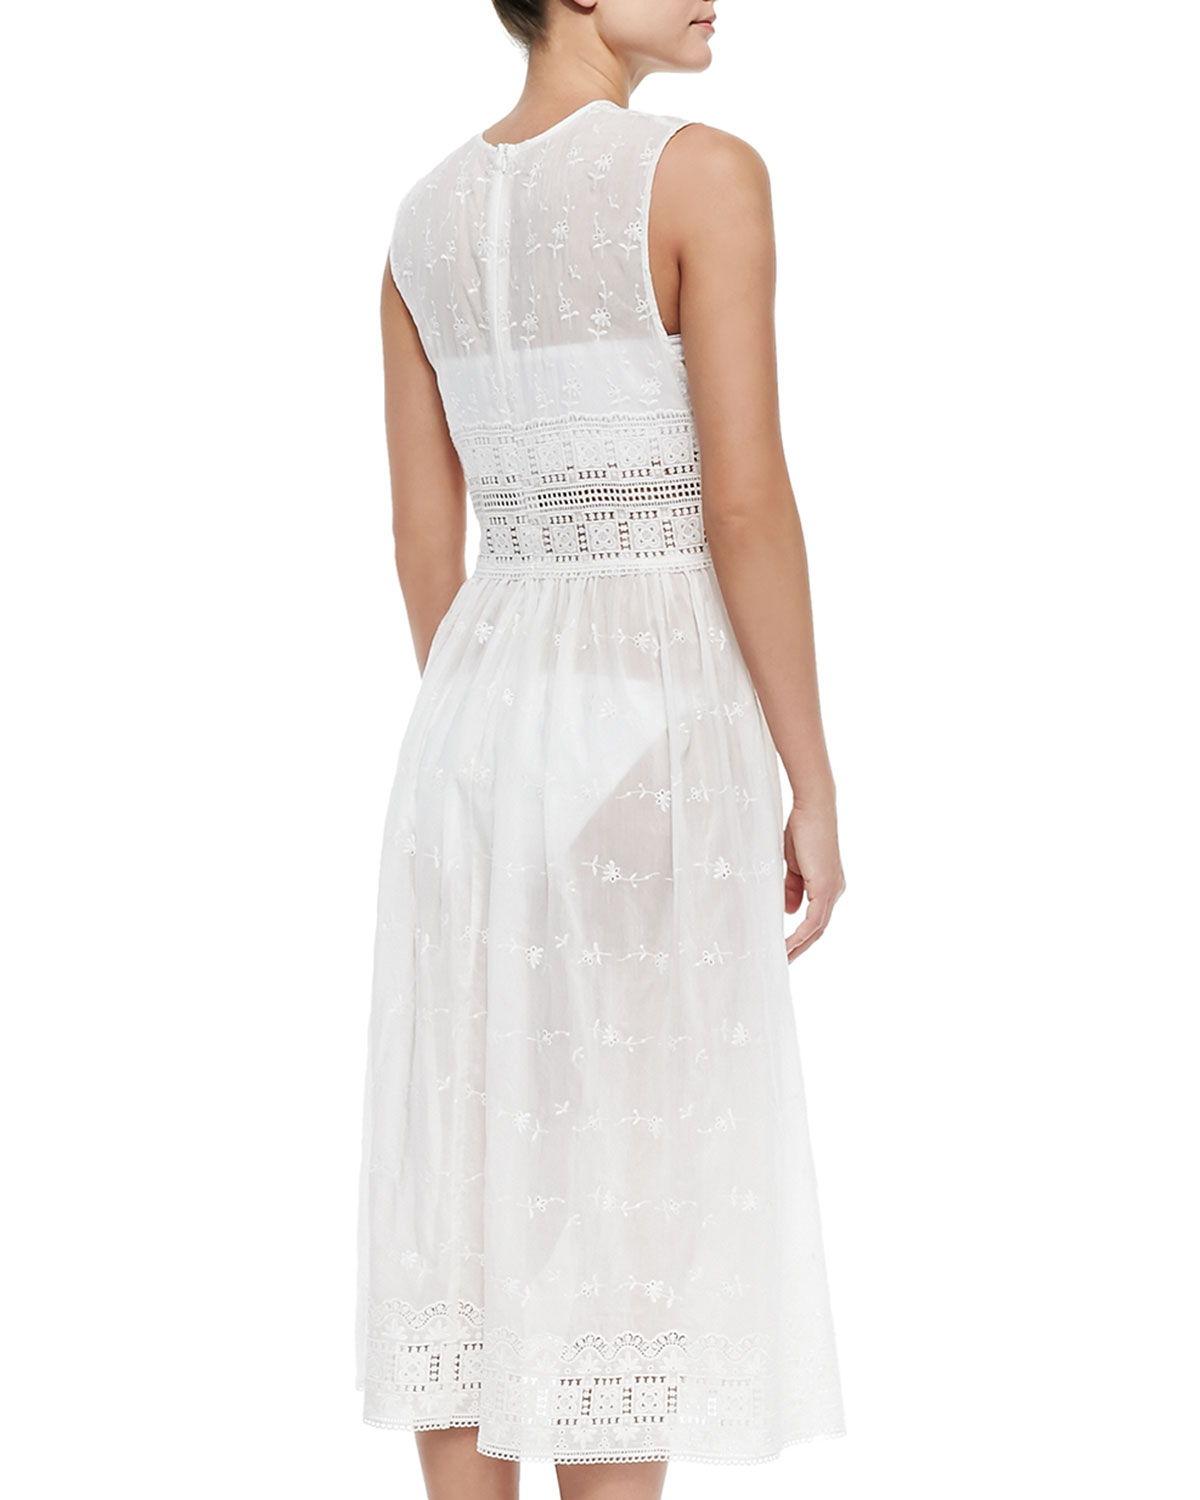 Zimmermann embroidered eyelet voile coverup dress in white